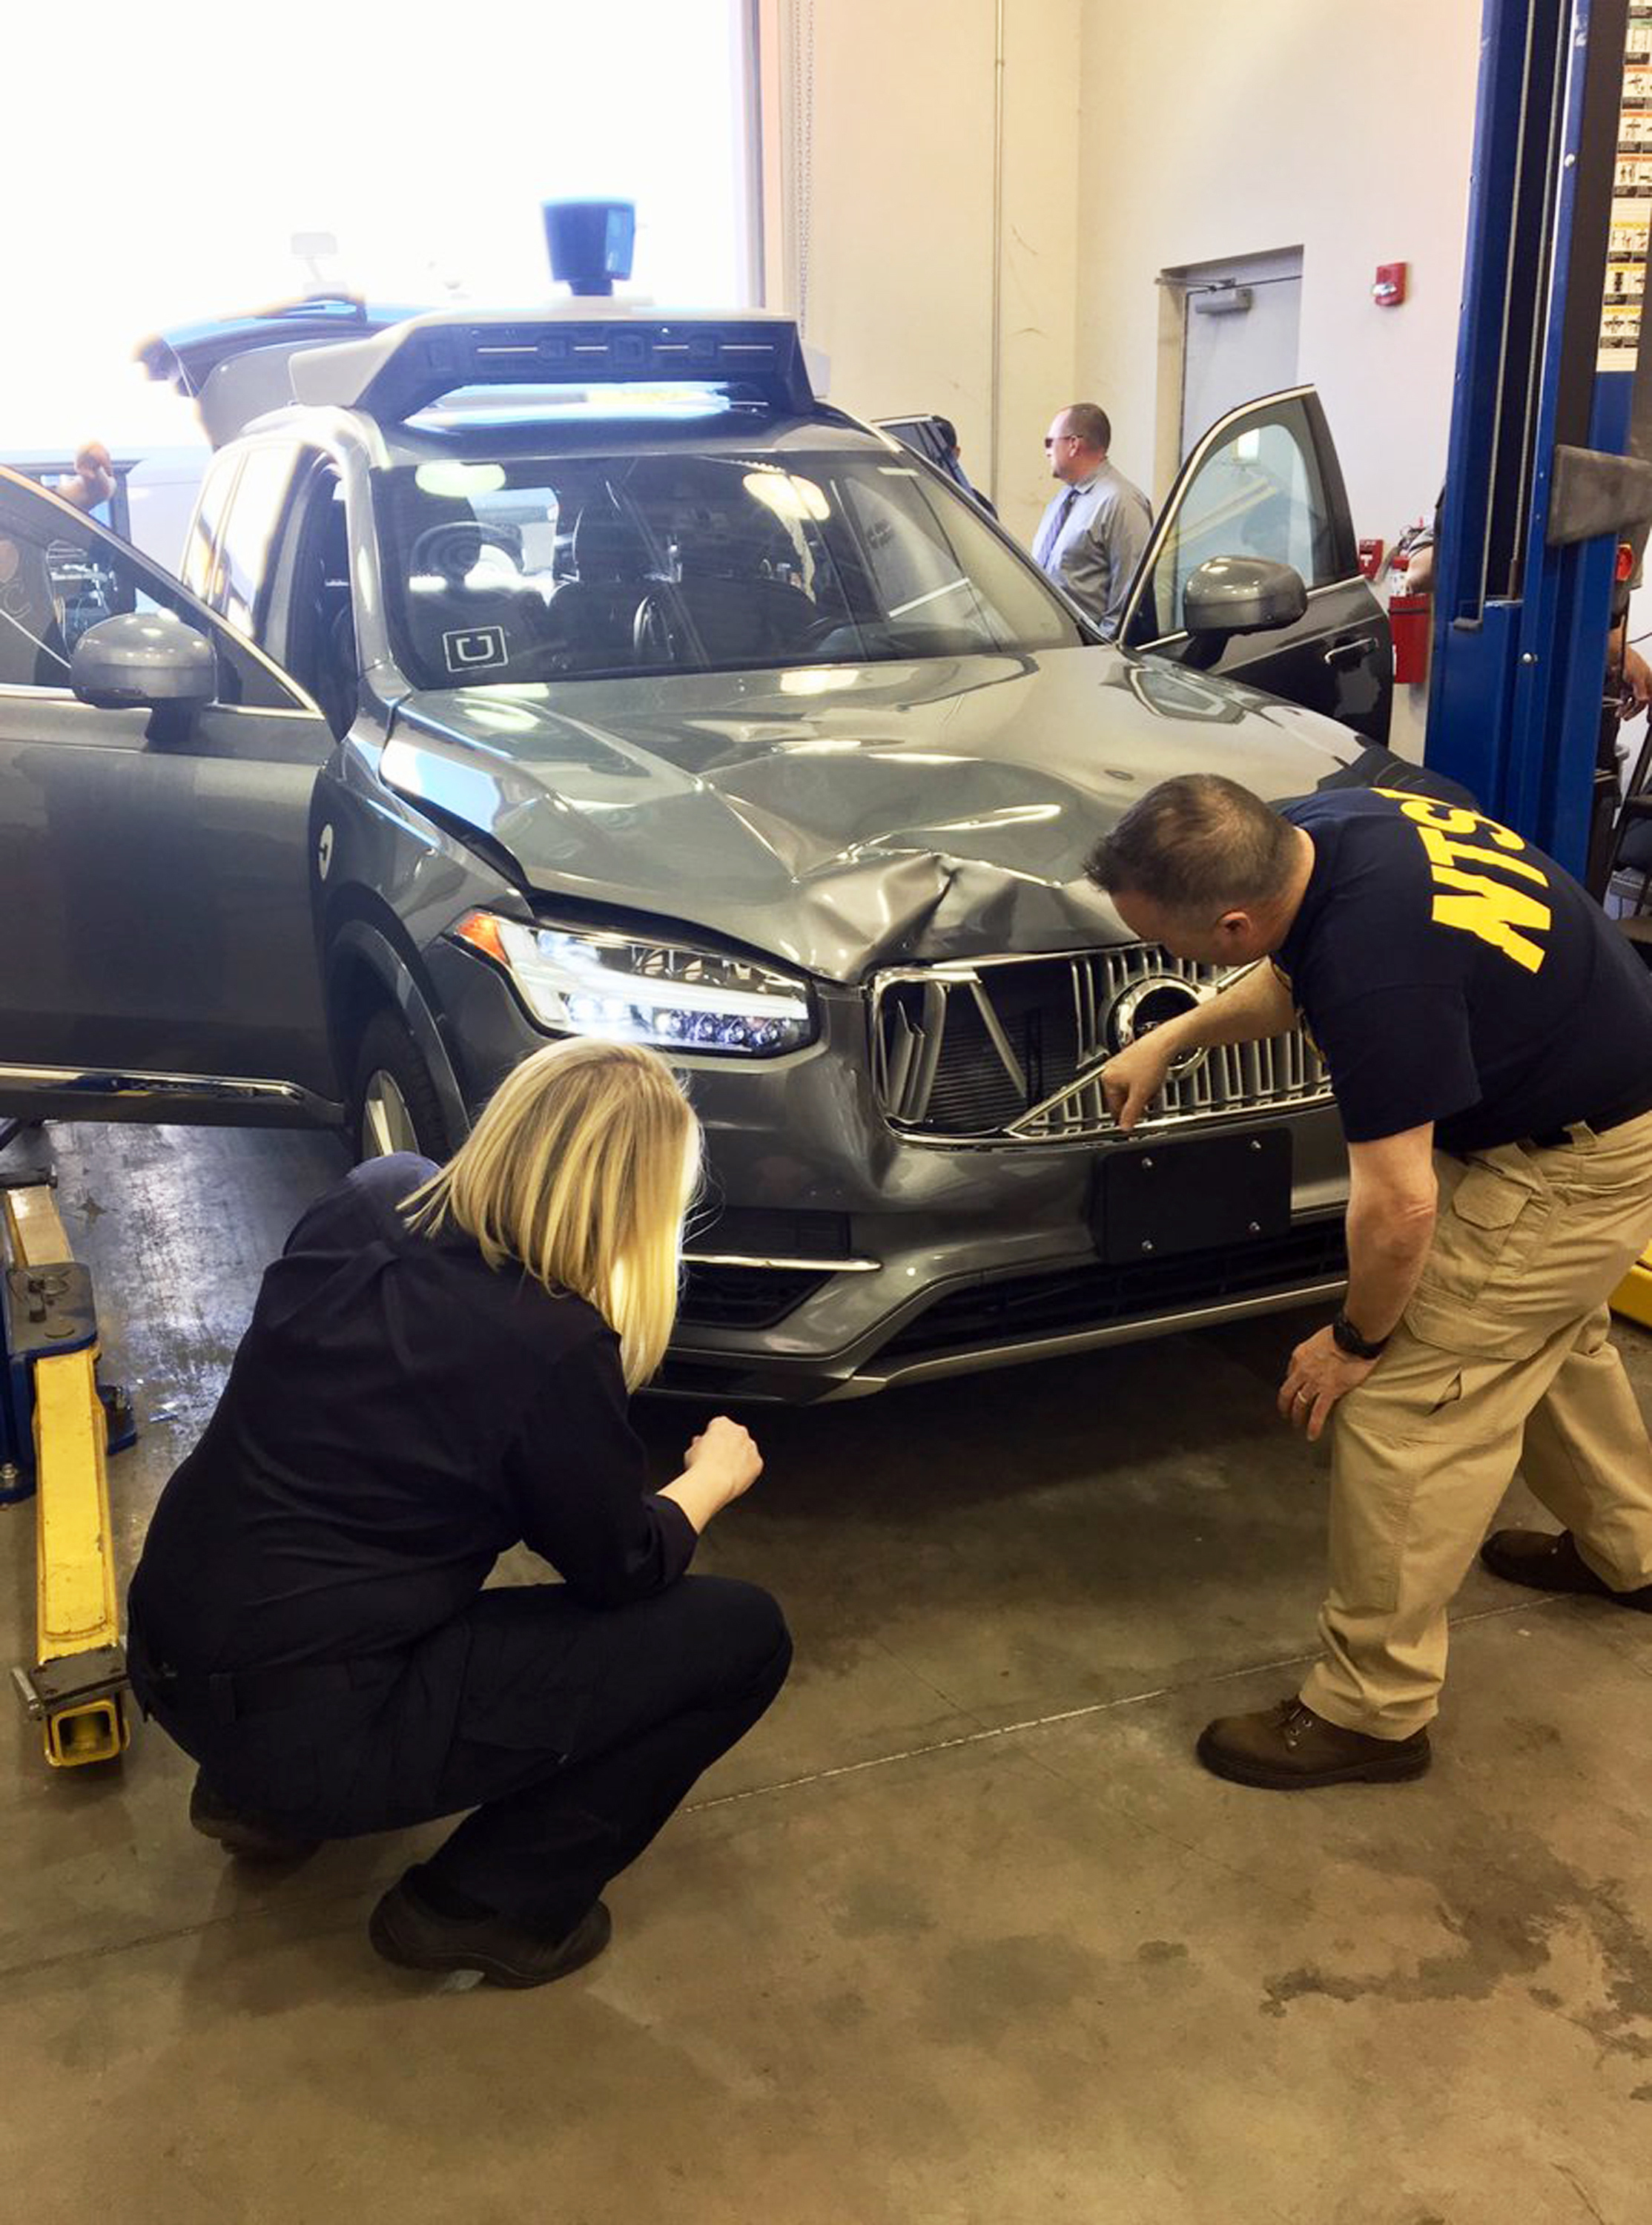 Investigators examine a driverless Uber SUV that fatally struck a woman in Arizona (National Transportation Safety Board via AP)